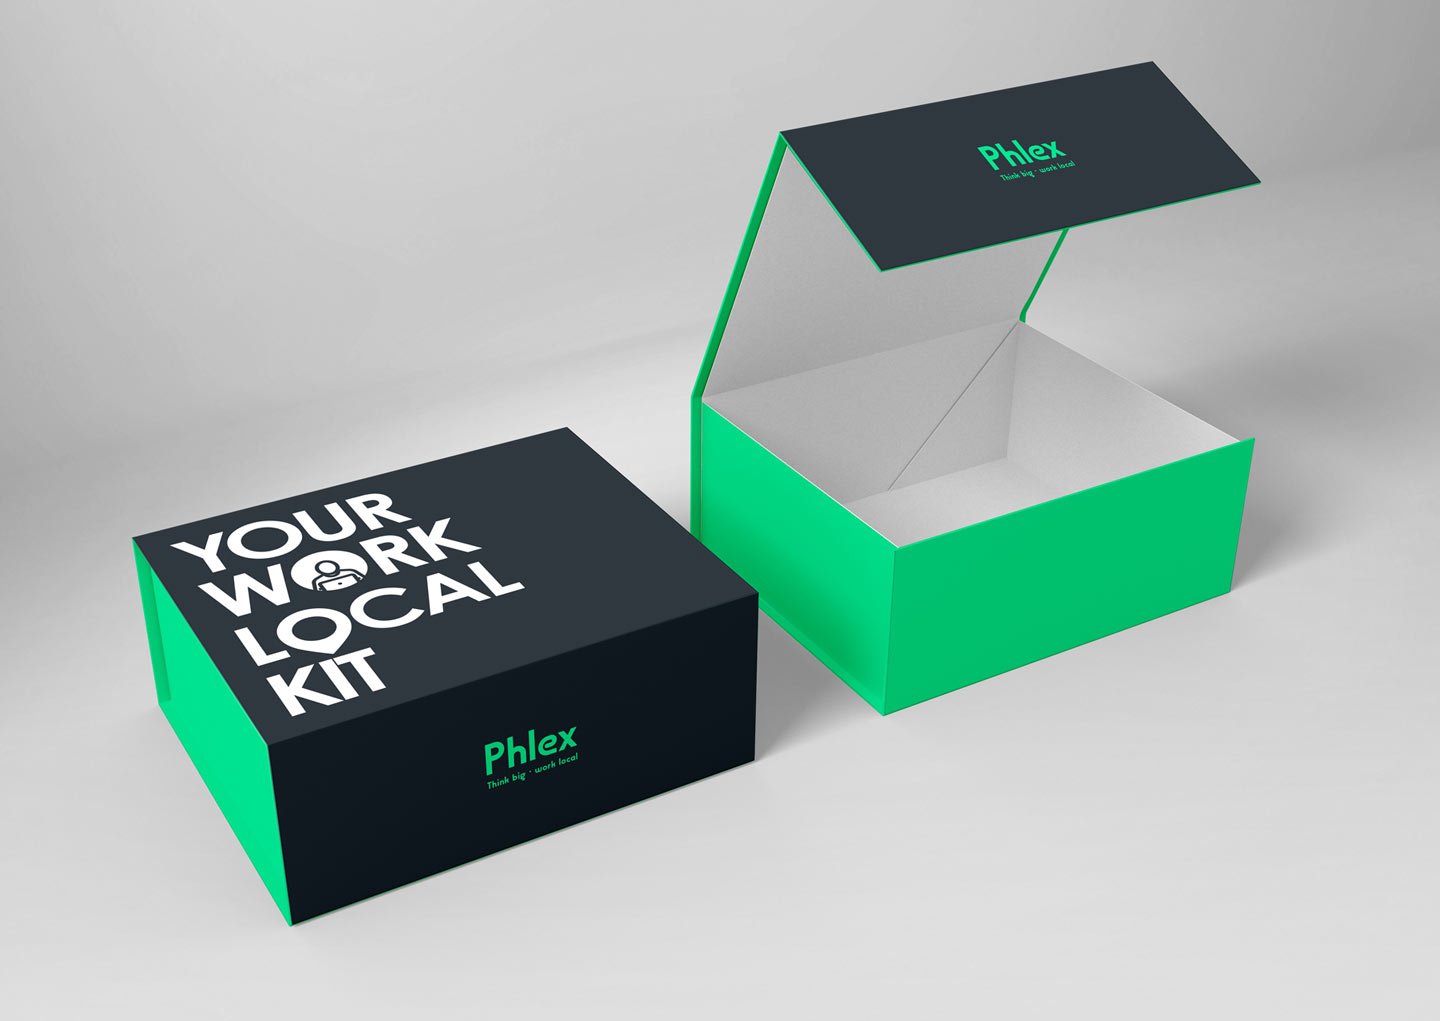 Activation brand campaigns for clients like Phlex